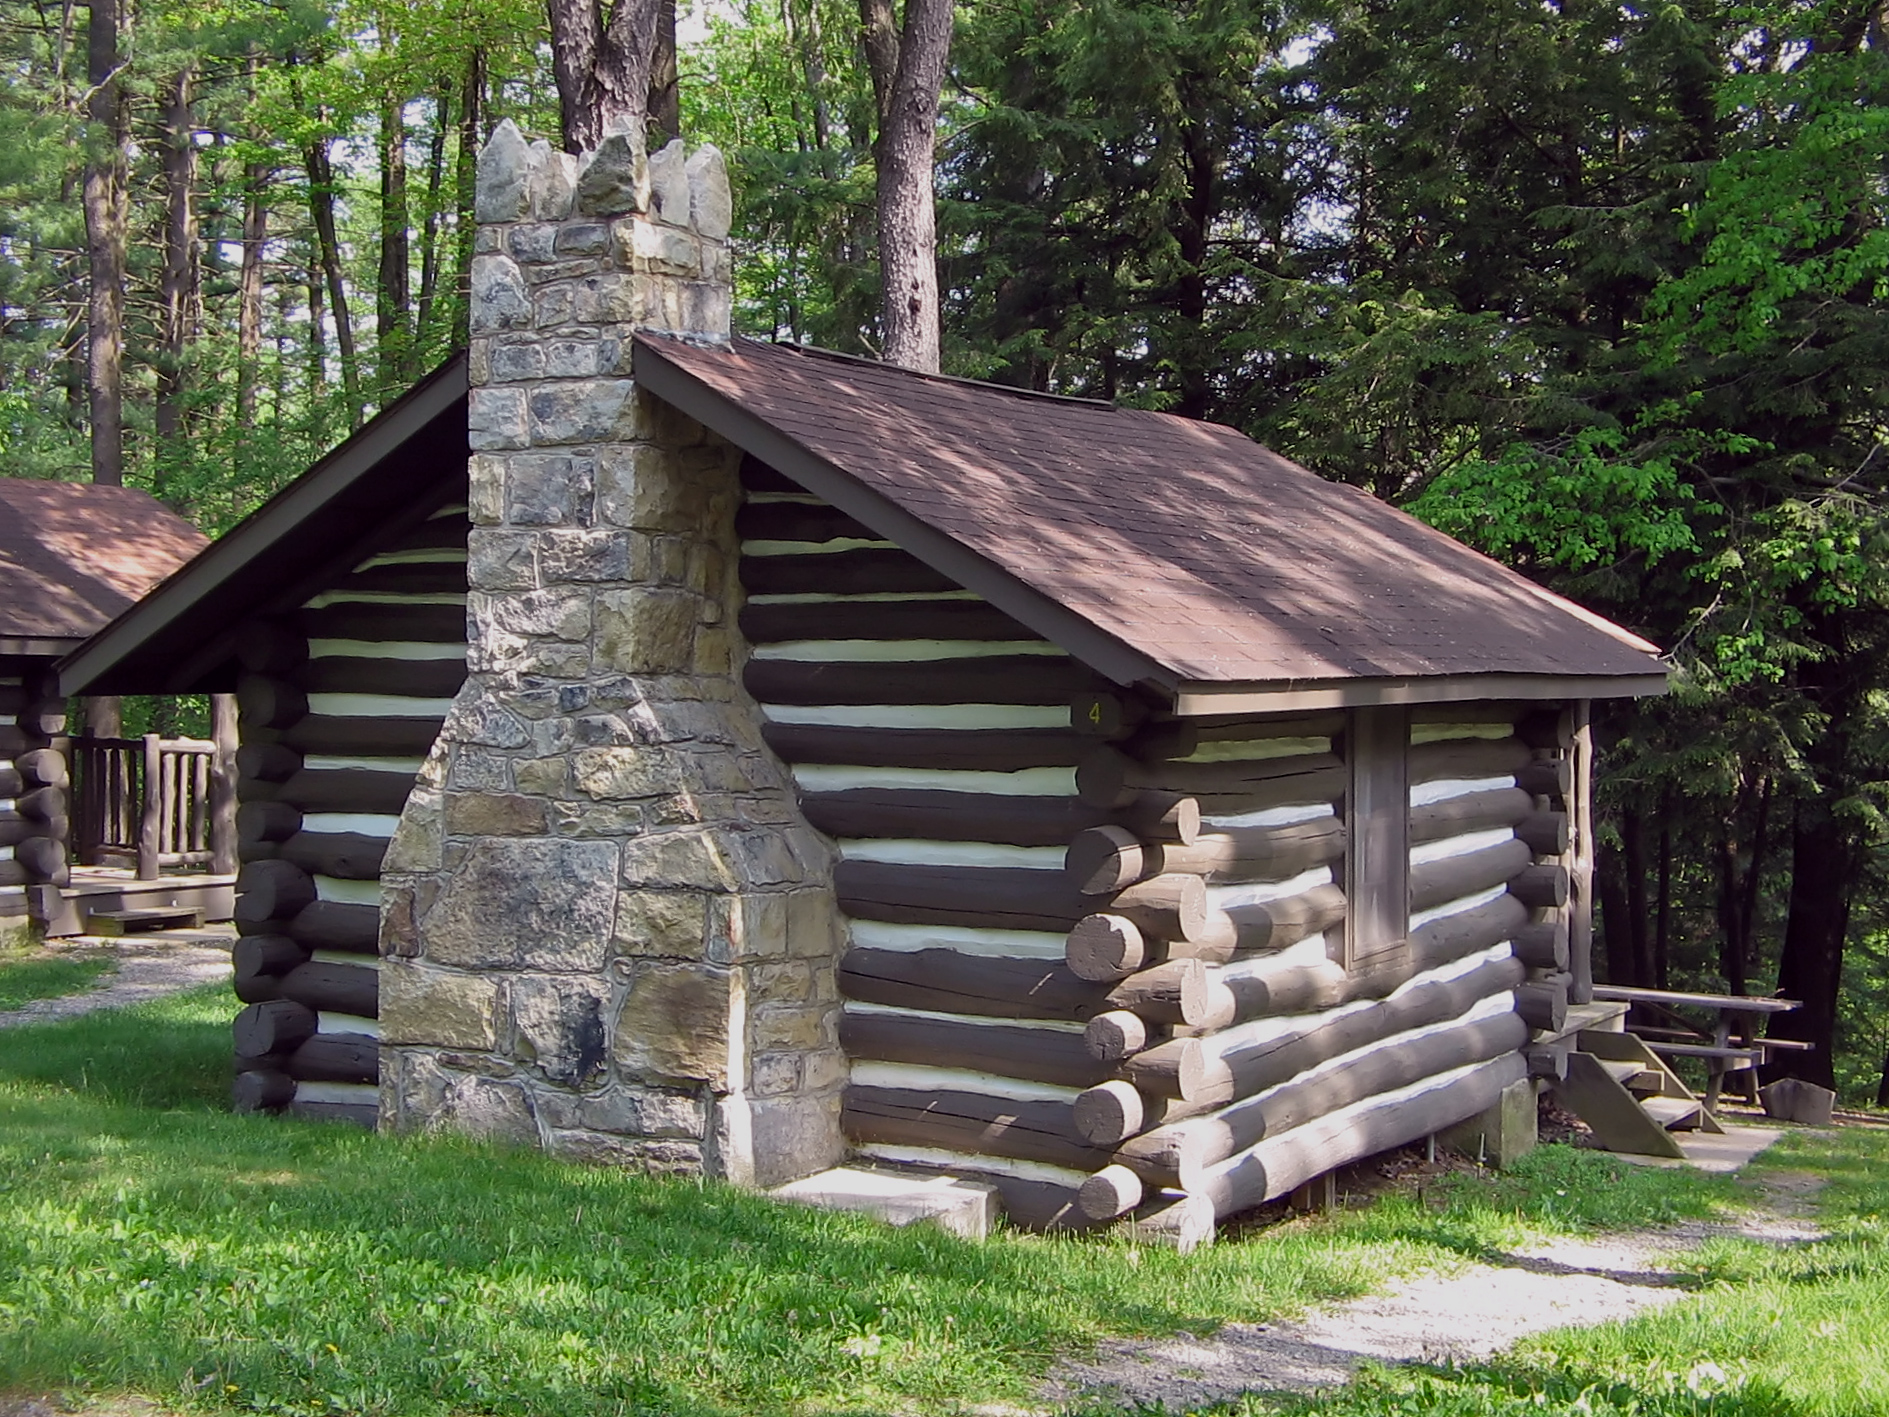 Log Cabin at Black Moshannon State Park, Pennsylvania by User: Ruhrfisch - Wikimedia Commons